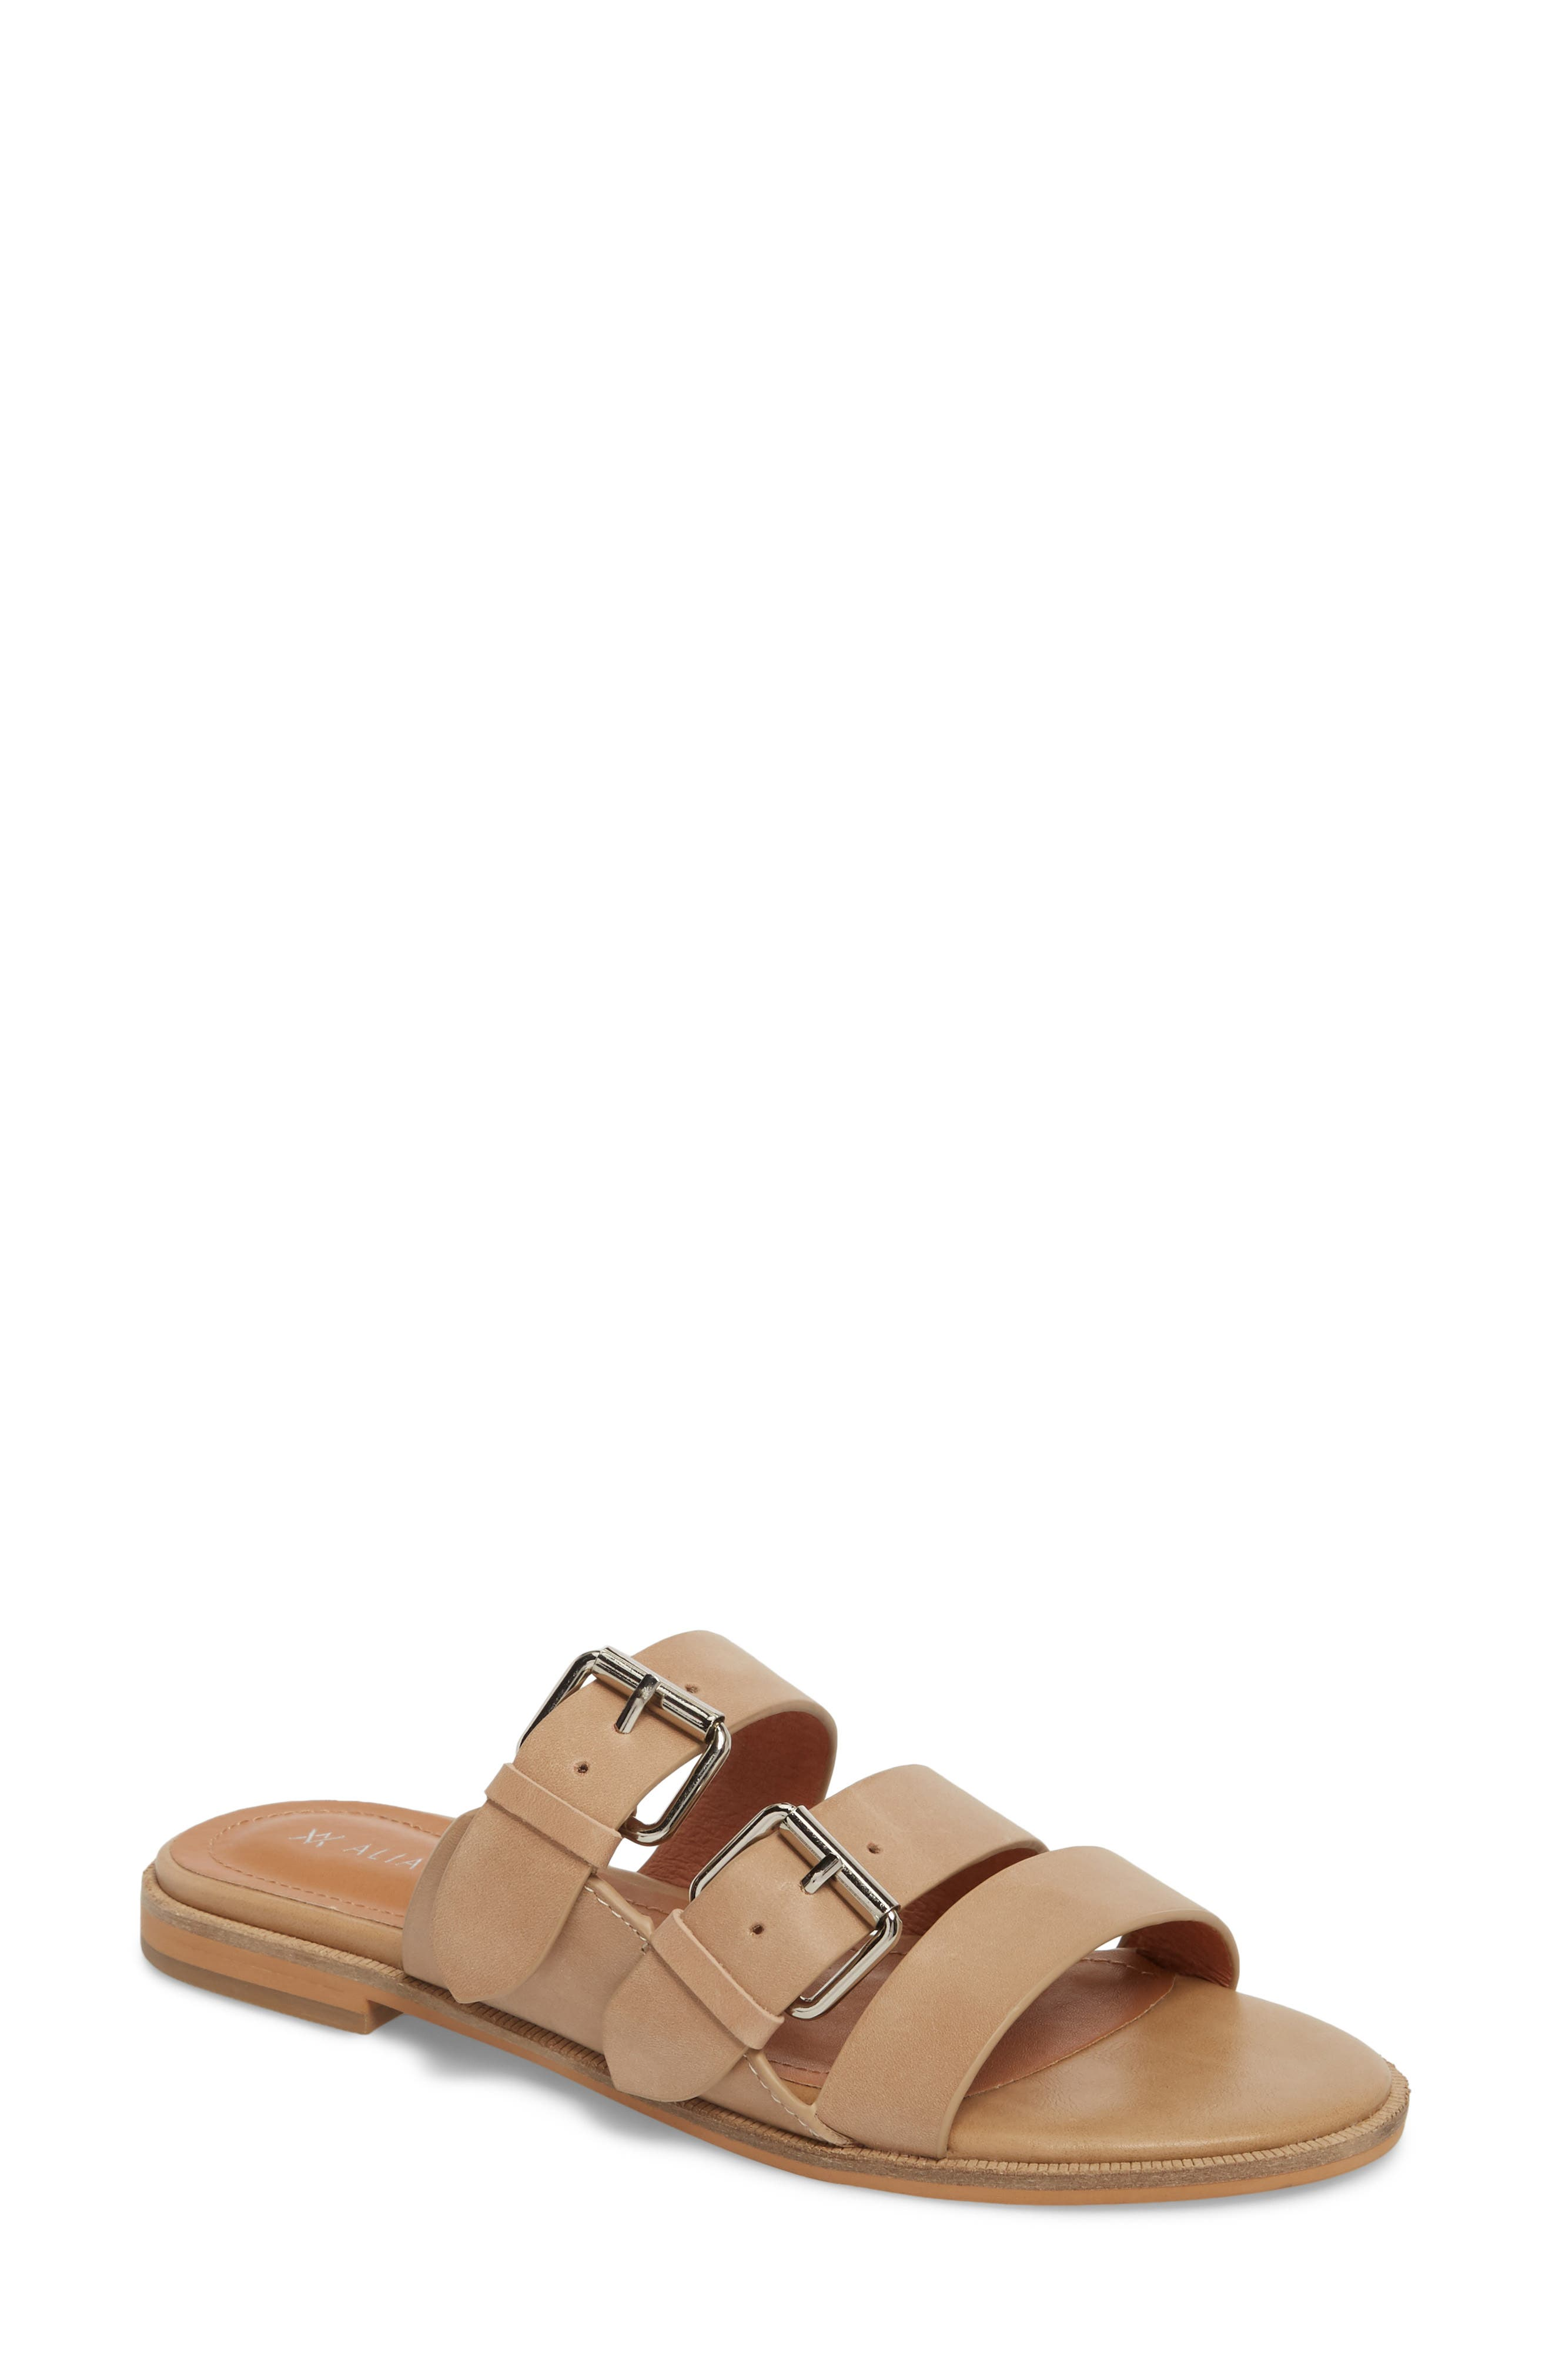 ALIAS MAE Theatre Buckled Slide Sandal in Natural Leather